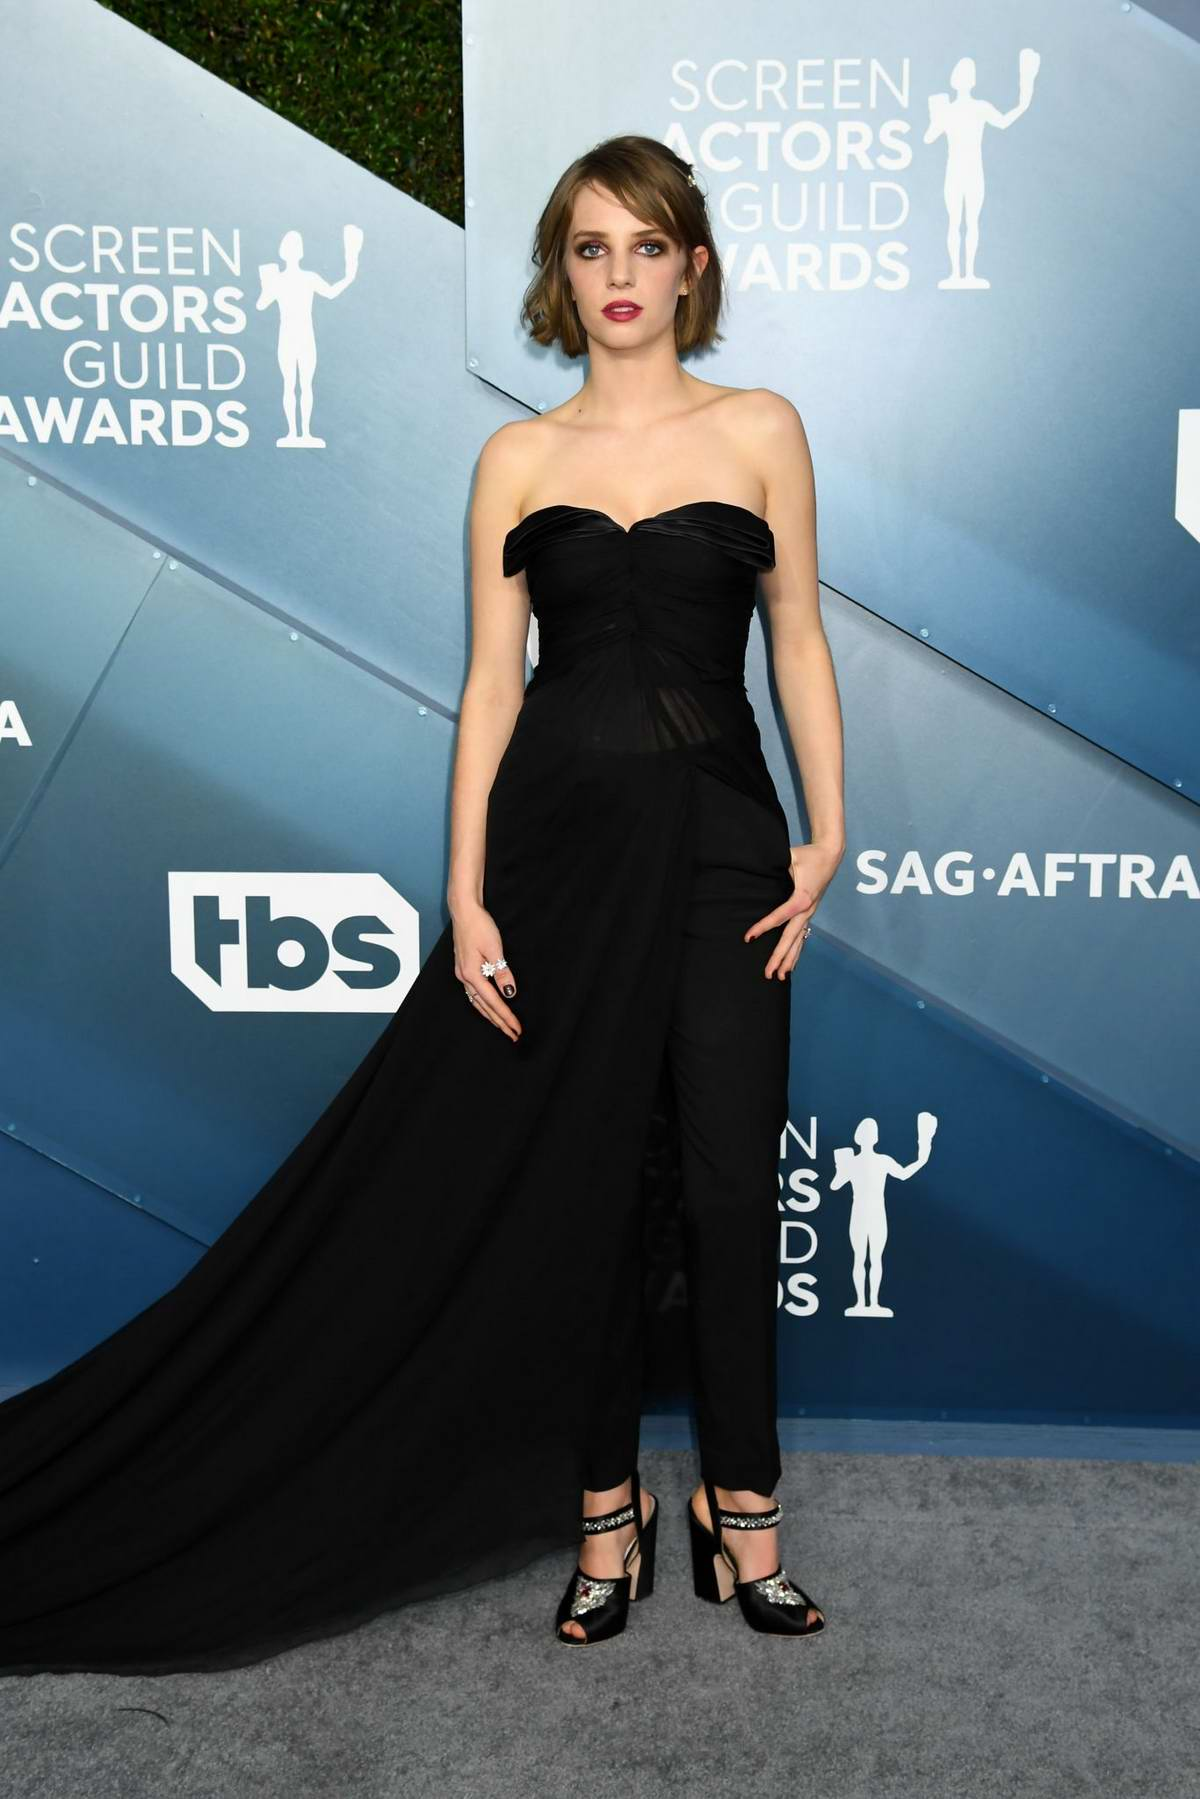 Maya Hawke attends the 26th Annual Screen Actors Guild Awards at the Shrine Auditorium in Los Angeles